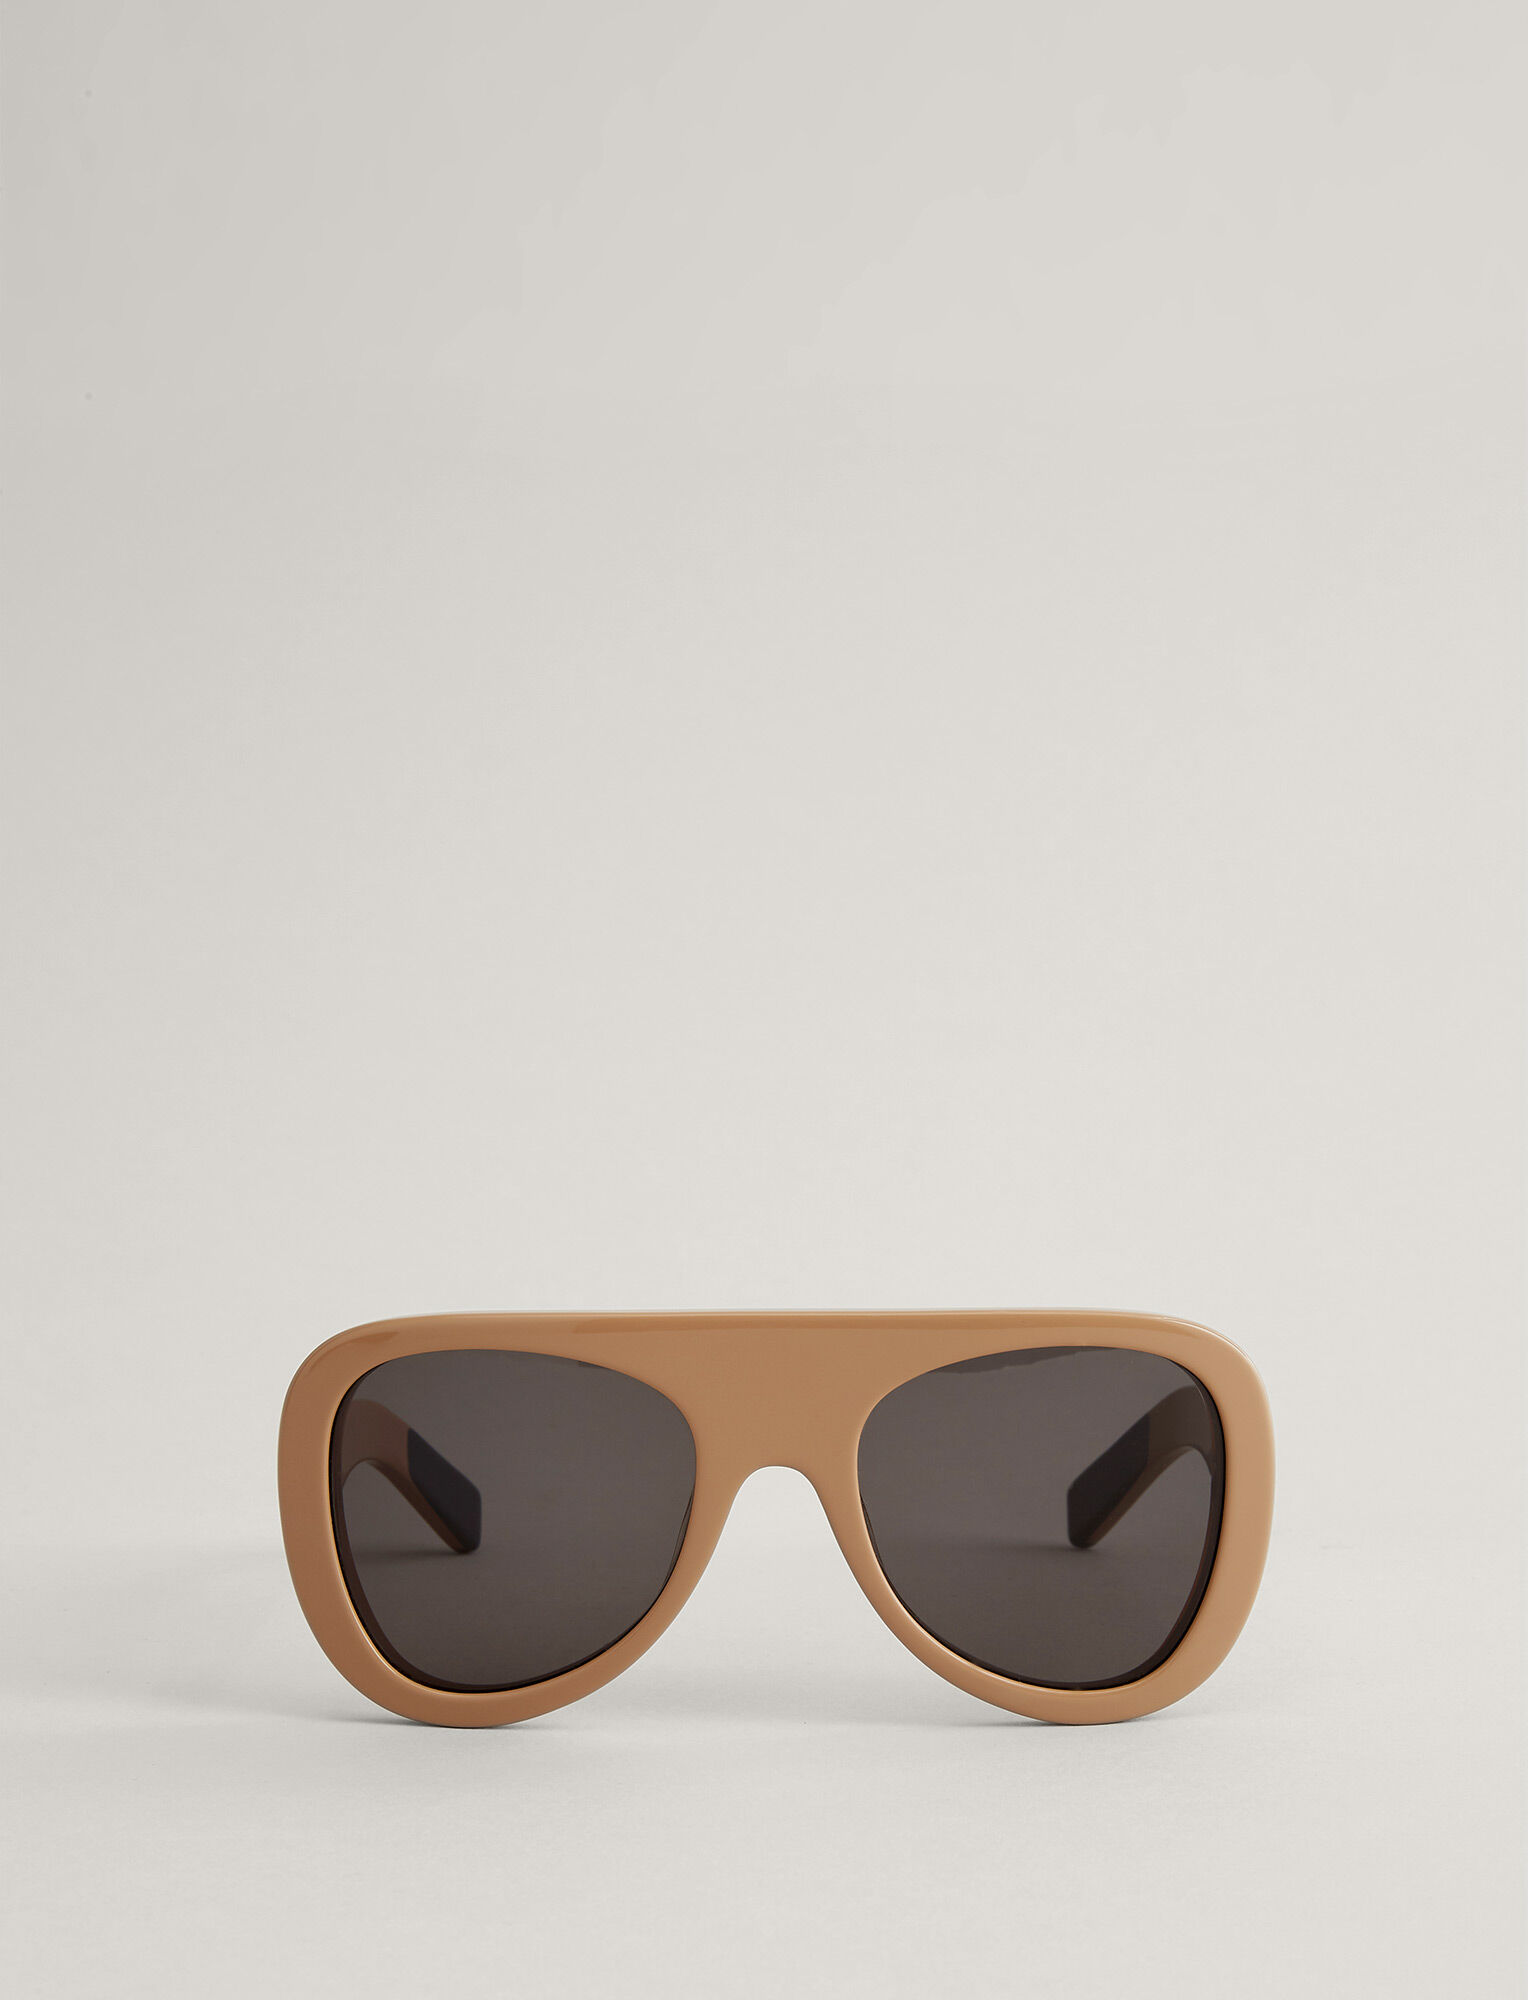 Joseph, Chelsea Sunglasses, in CAMEL